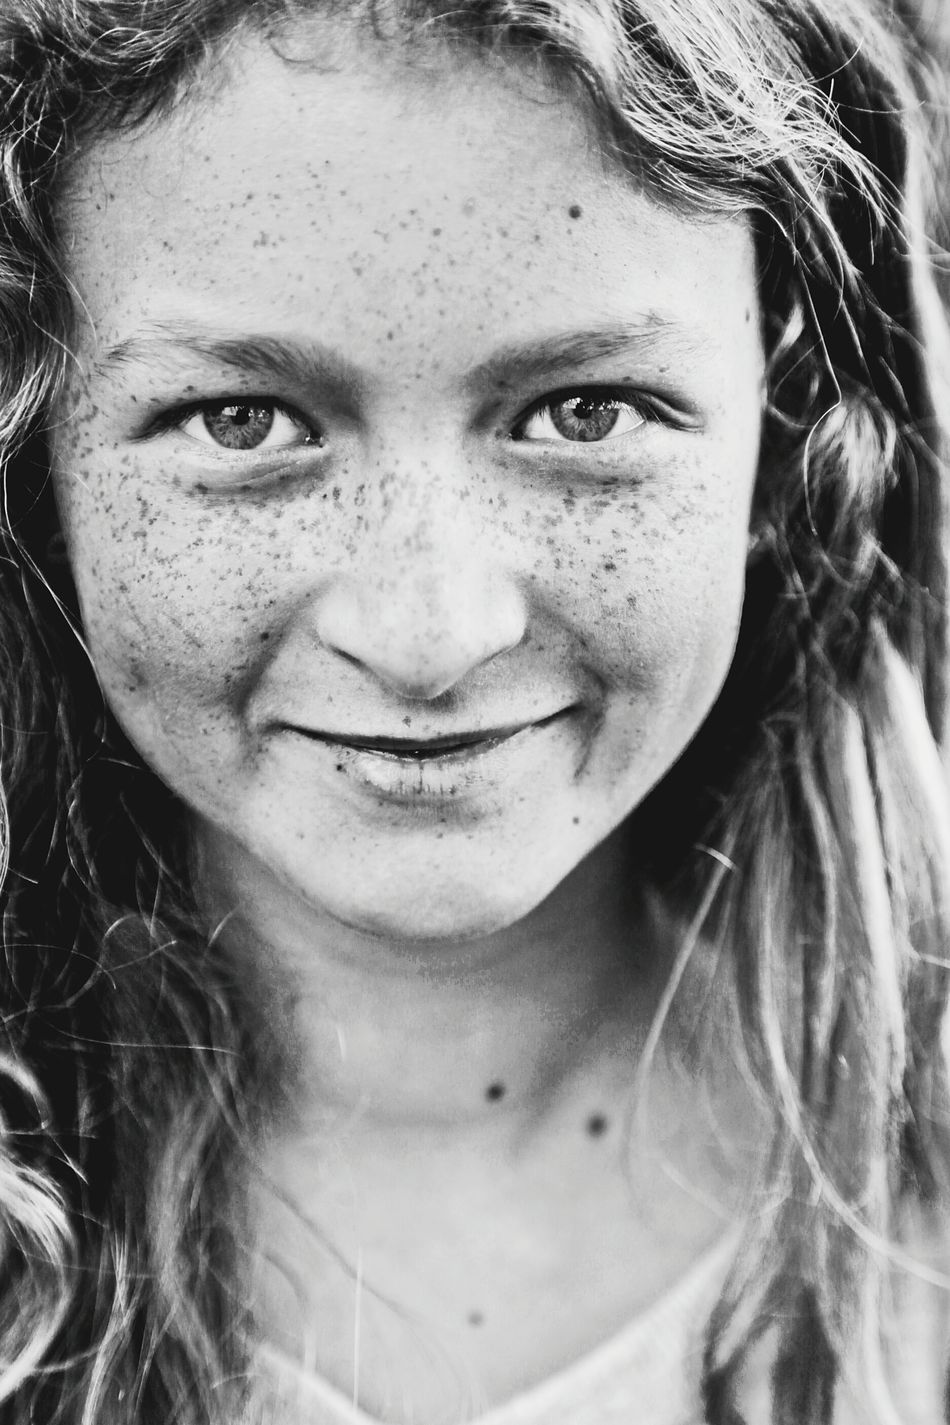 Portrait Freckle Beauty Youth Beautiful People Real People Freckled Girl Close-up Beautiful Girl Blackandwhite Black & White Black And White Smiling Freckles Teenager Teenage Girls Teen One Girl Only Looking At Camera Lifestyle People Youth Of Today Fashion Eyes Eyes Are Soul Reflection EyeEmNewHere Art Is Everywhere Resist